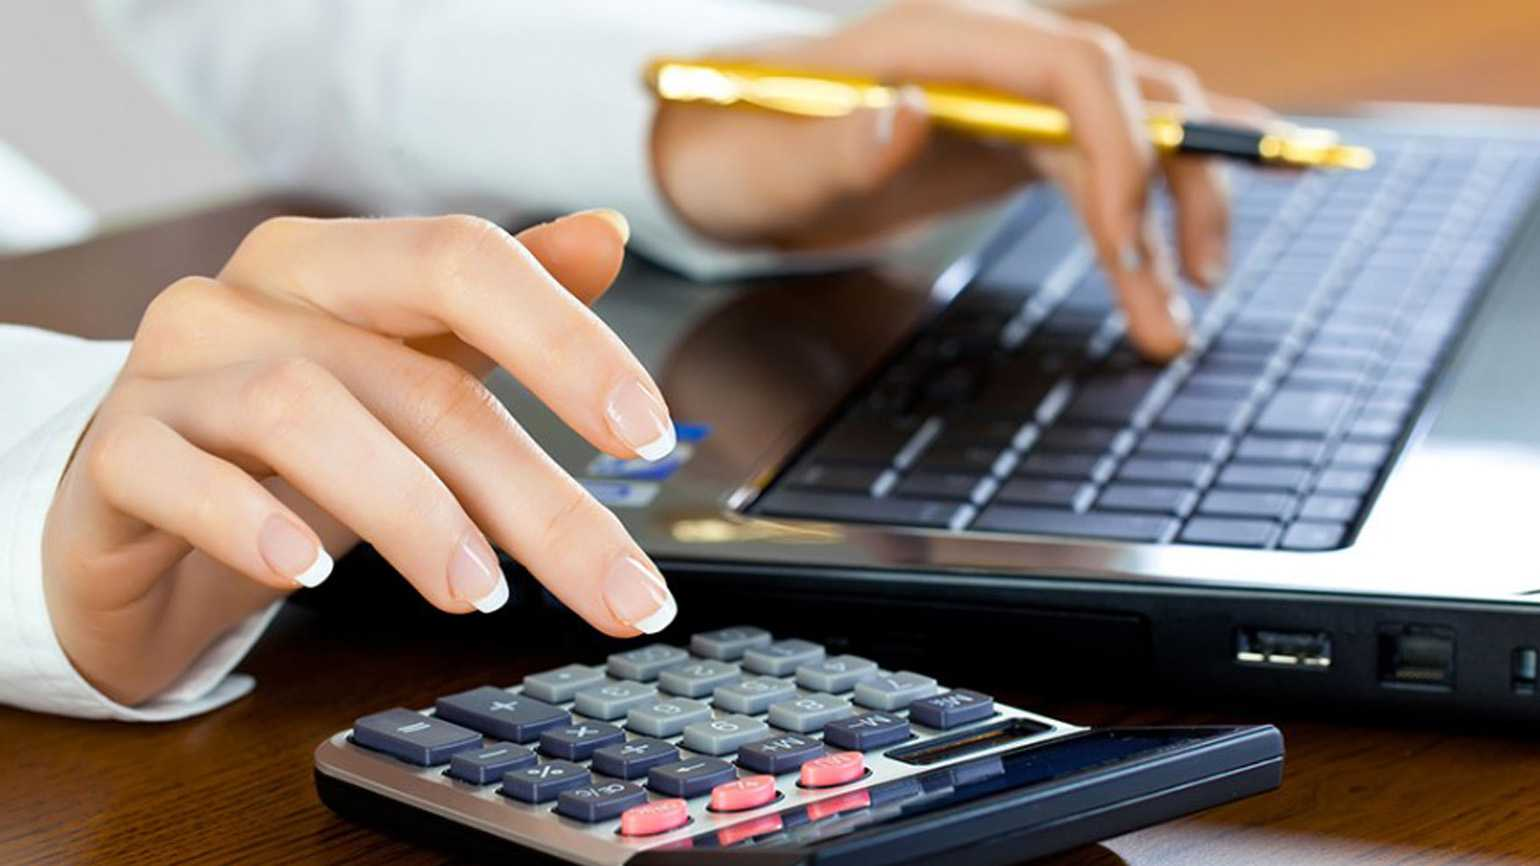 A woman calculating costs using a calculator and laptop.